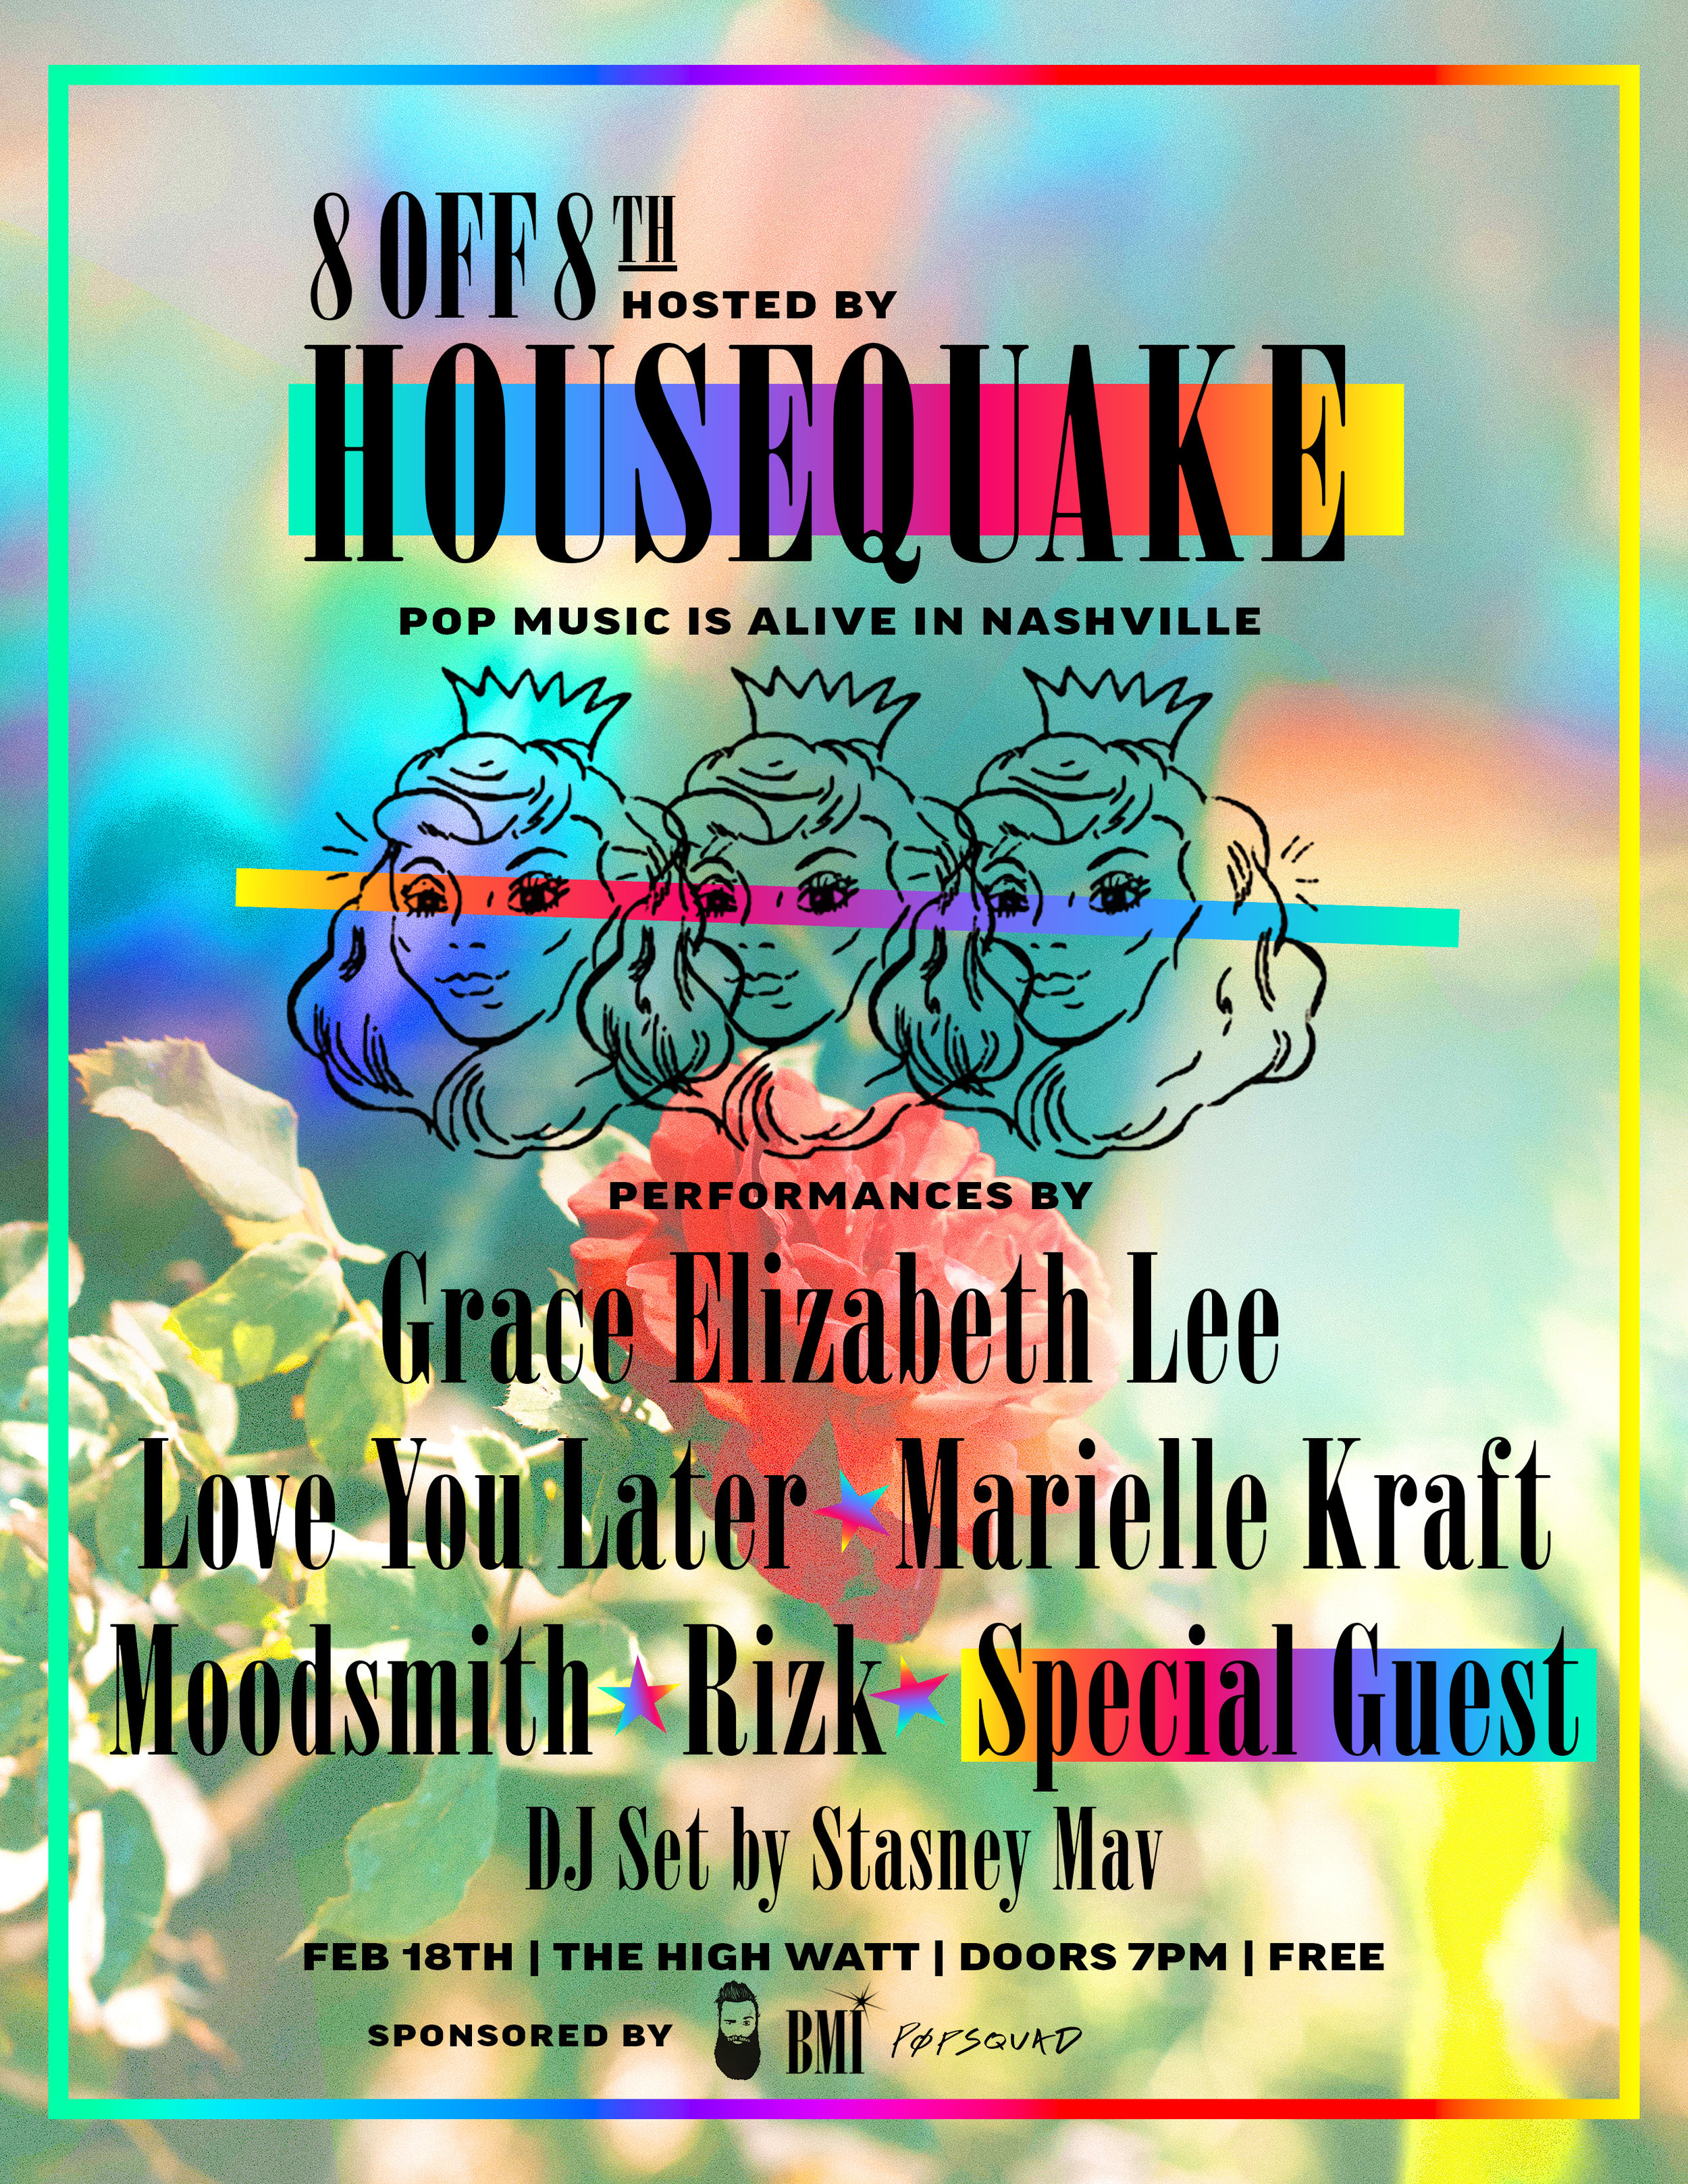 housequake-FEB-Poster-4.jpeg